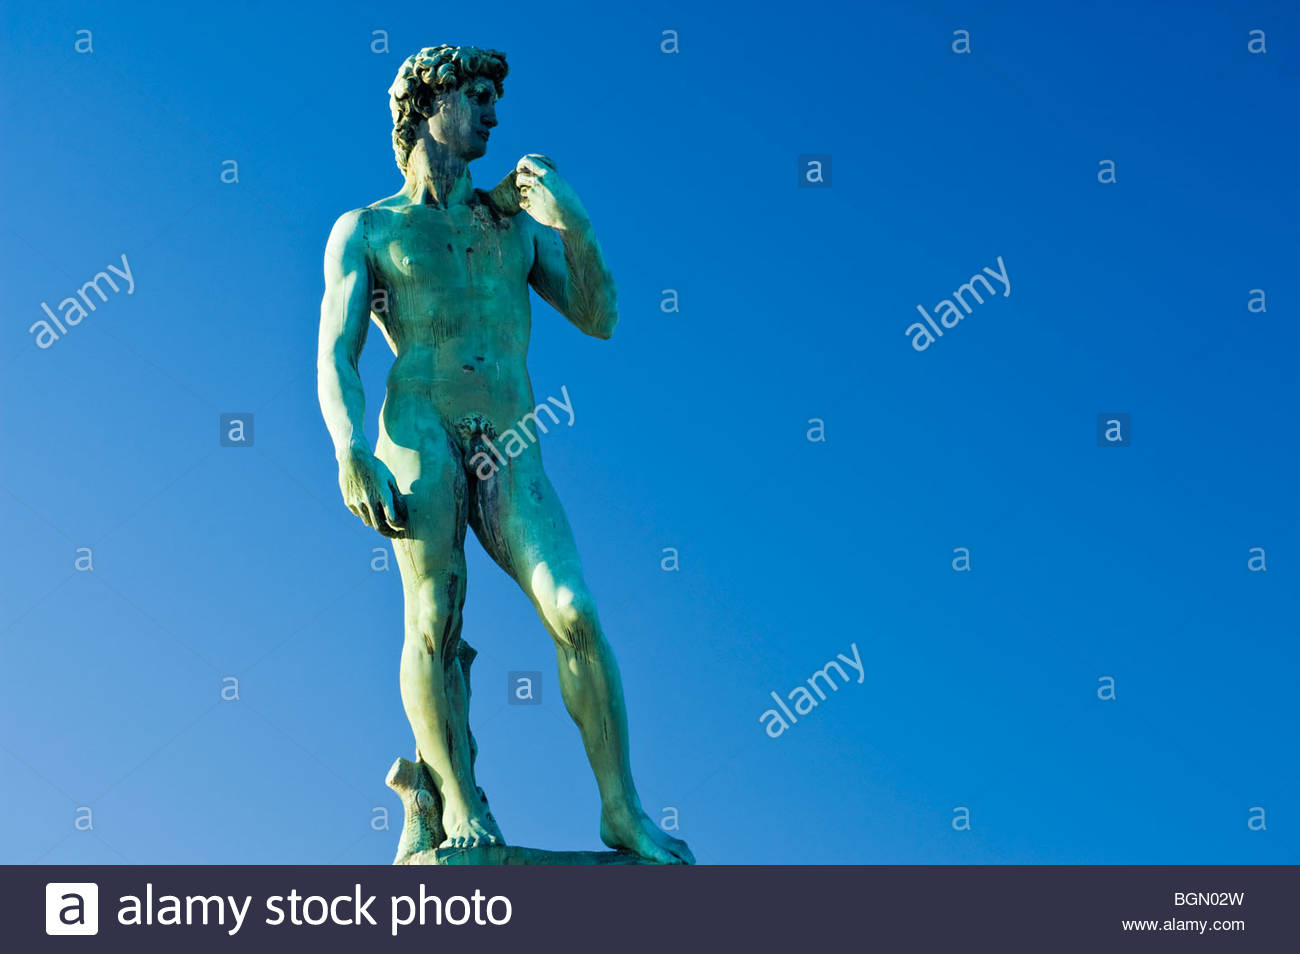 Statue of David, Piazza Michelangelo, Florence, Italy. - Stock Image